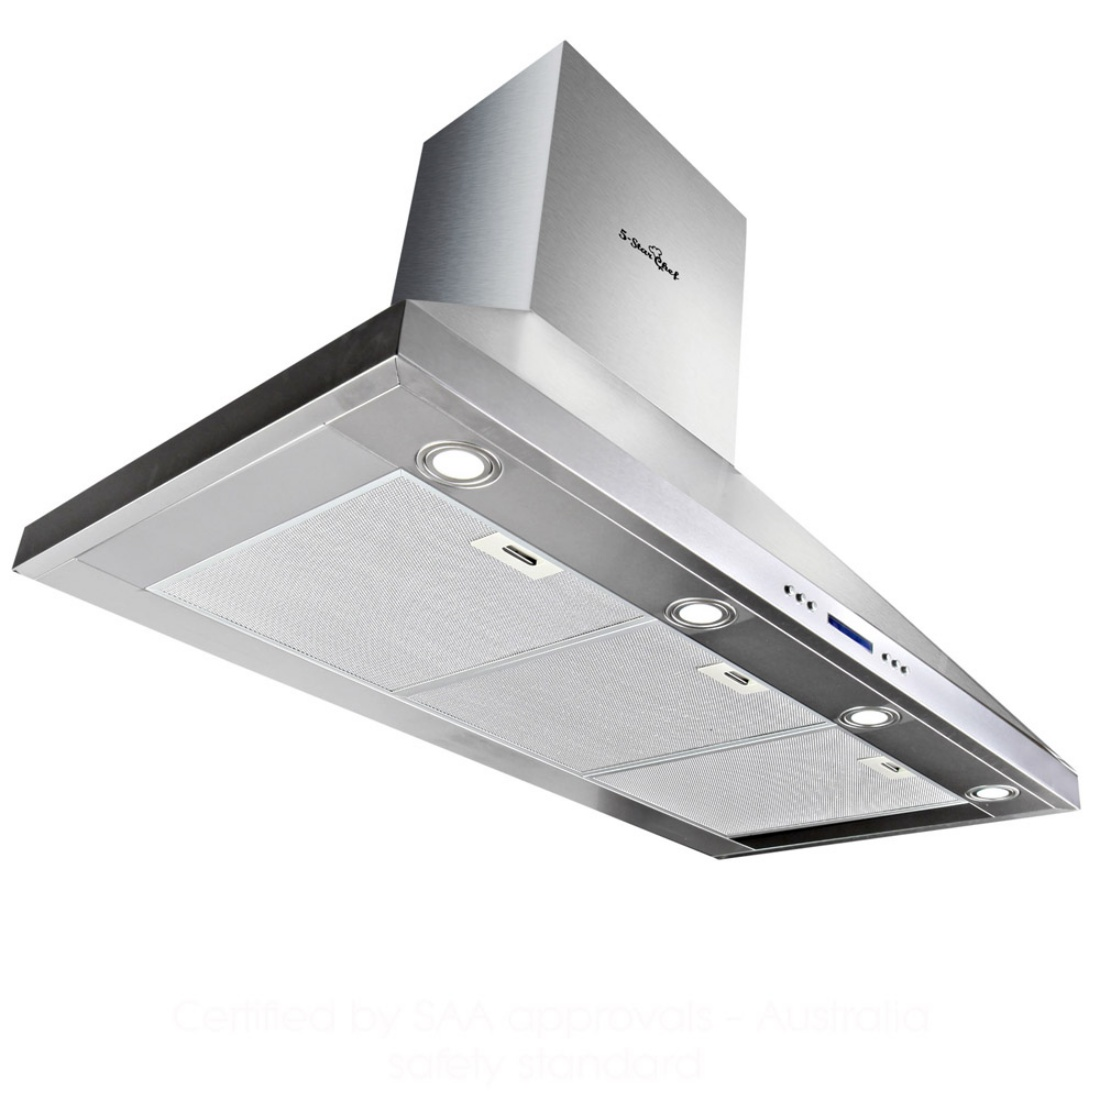 5 Star Chef 3 Fan Speed Rangehood 120cm